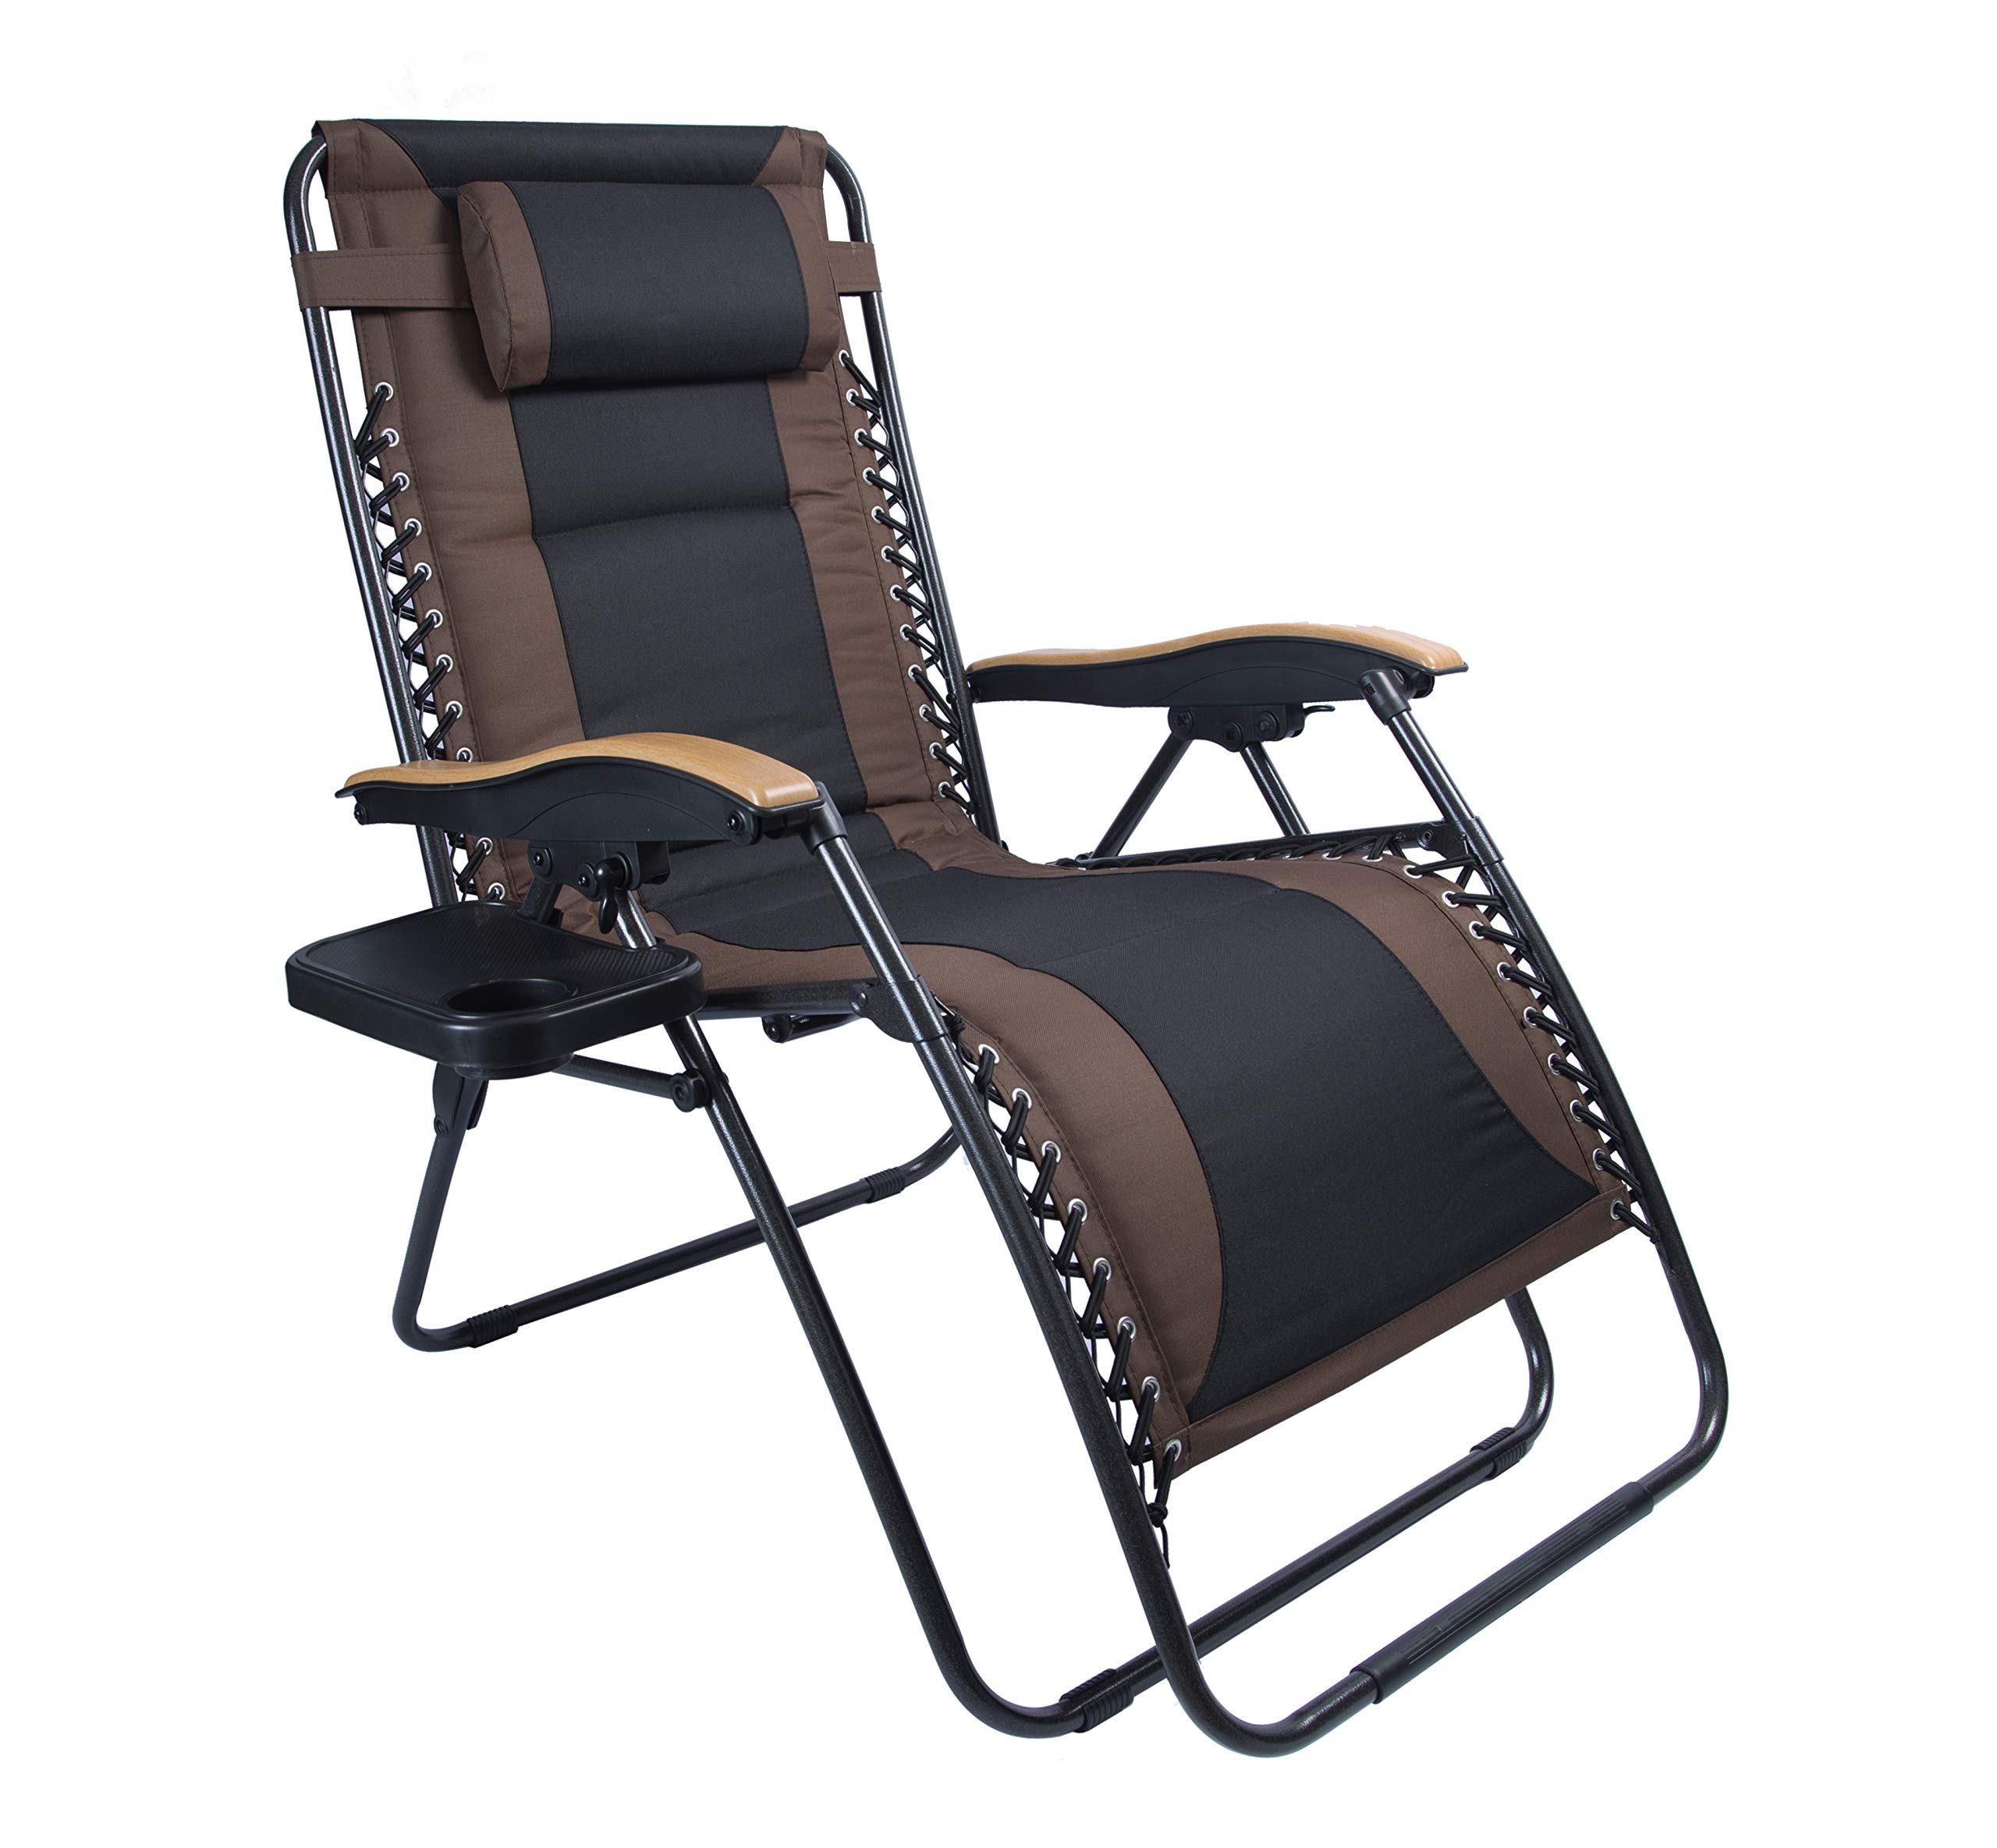 LUCKYBERRY Deluxe Oversized Padded Zero Gravity Chair XL Black Brown Cup Holder Lounge Patio Chairs Outdoor Yard Beach Support 350lbs by LUCKYBERRY (Image #1)